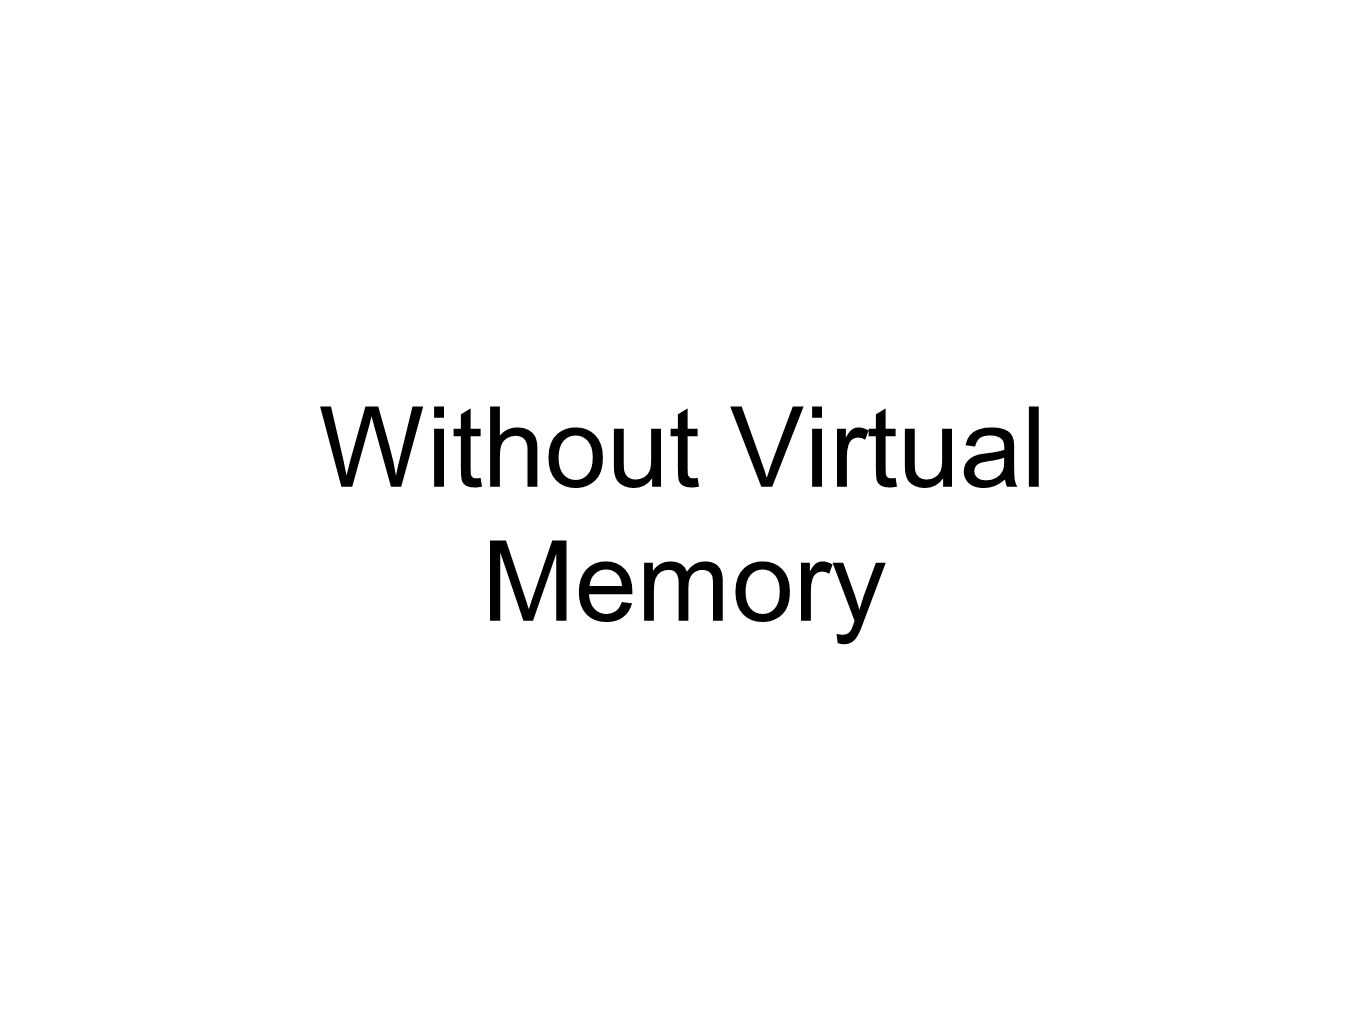 Without Virtual Memory